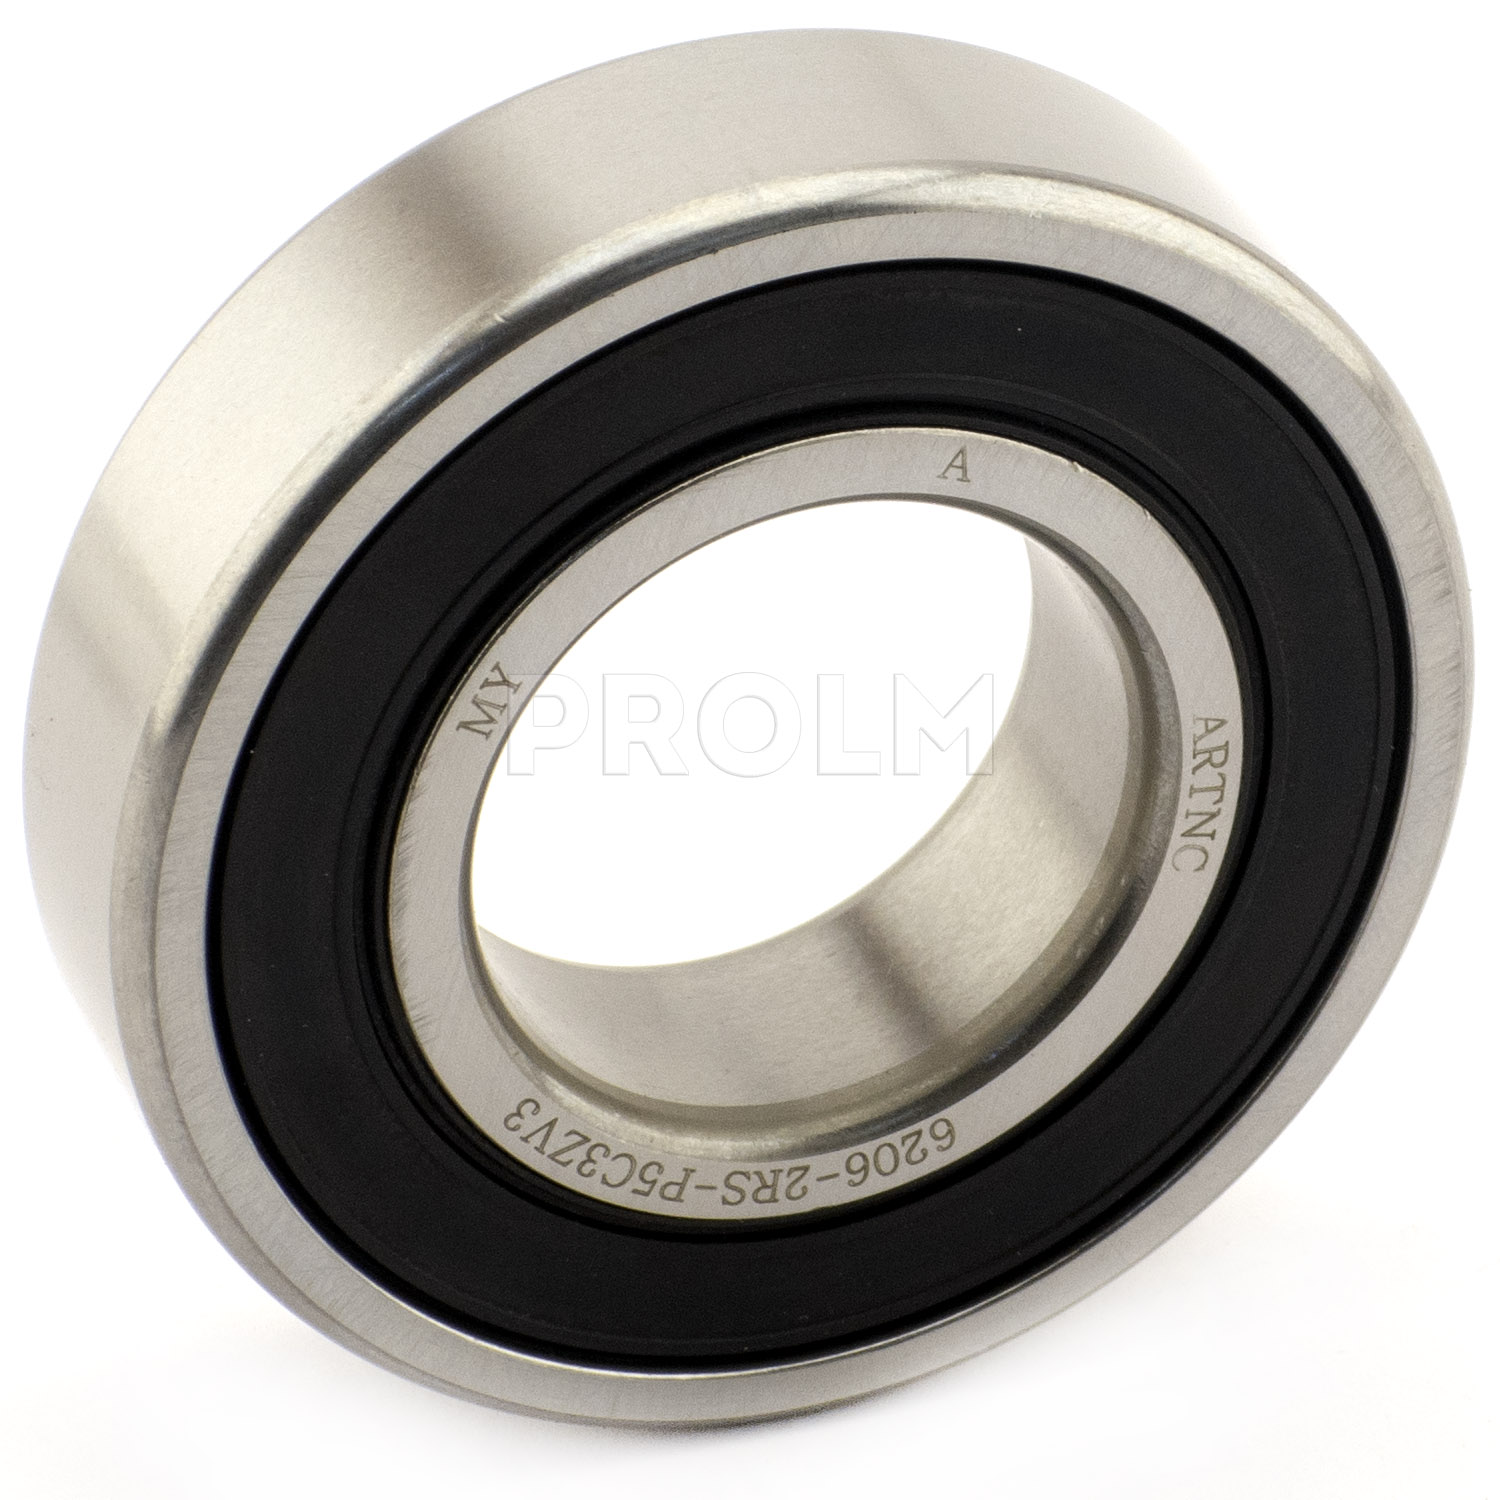 Ball bearing Radial deep groove  ArtNC 6206-2RS-P5-C3-ZV3